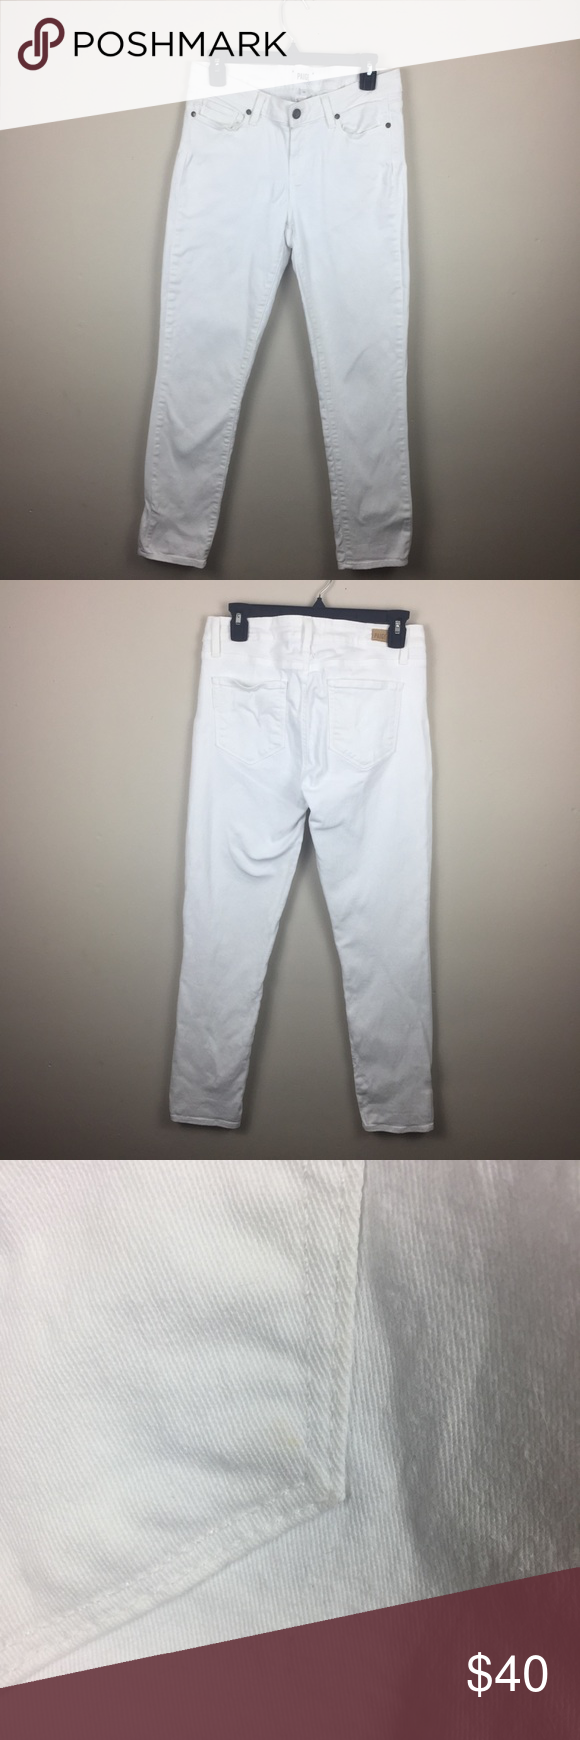 "c4bfdf7bf0d Paige Kylie crop optic white roll up skinny jeans Paige Kylie crop roll up  skinny jeans in optic white. Waist is 31"". Inseam is 28"" rise is 11.5"" hi  rise."